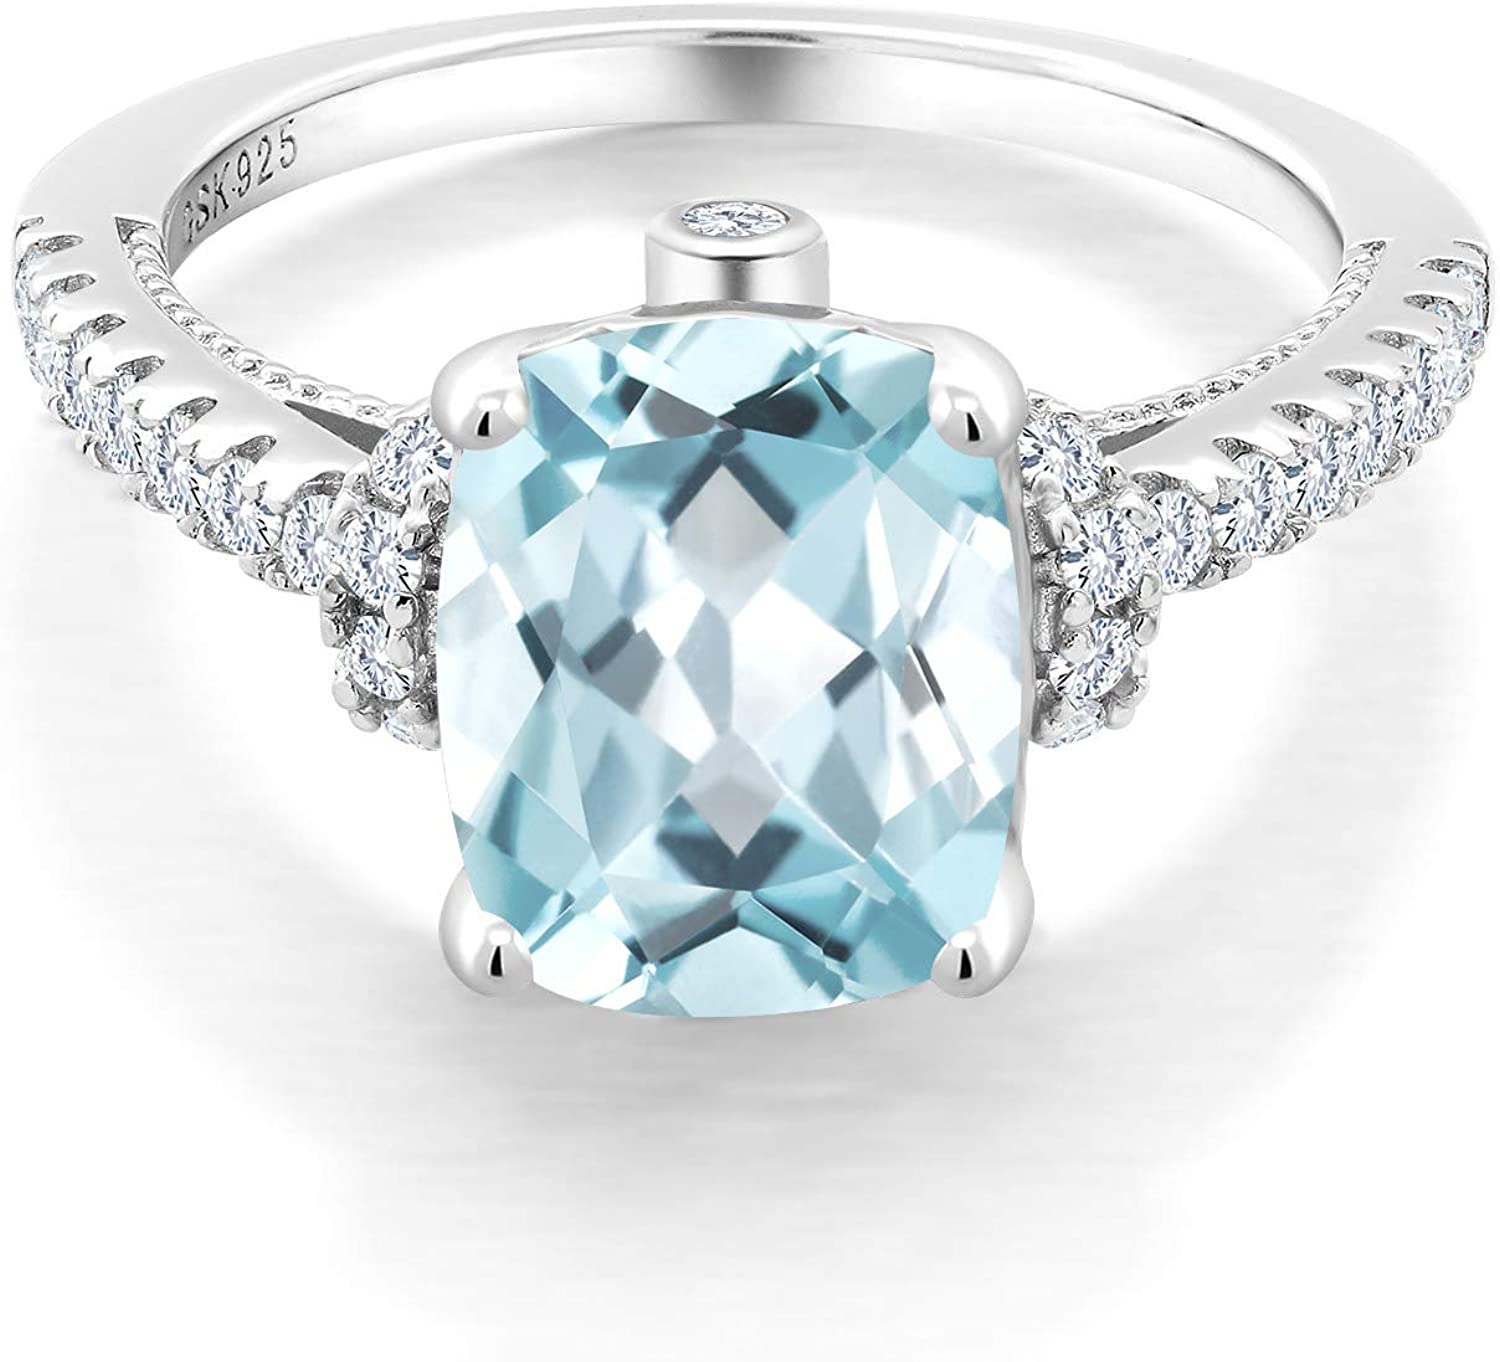 probably aquamarine Sterling silver ring with light blue stone